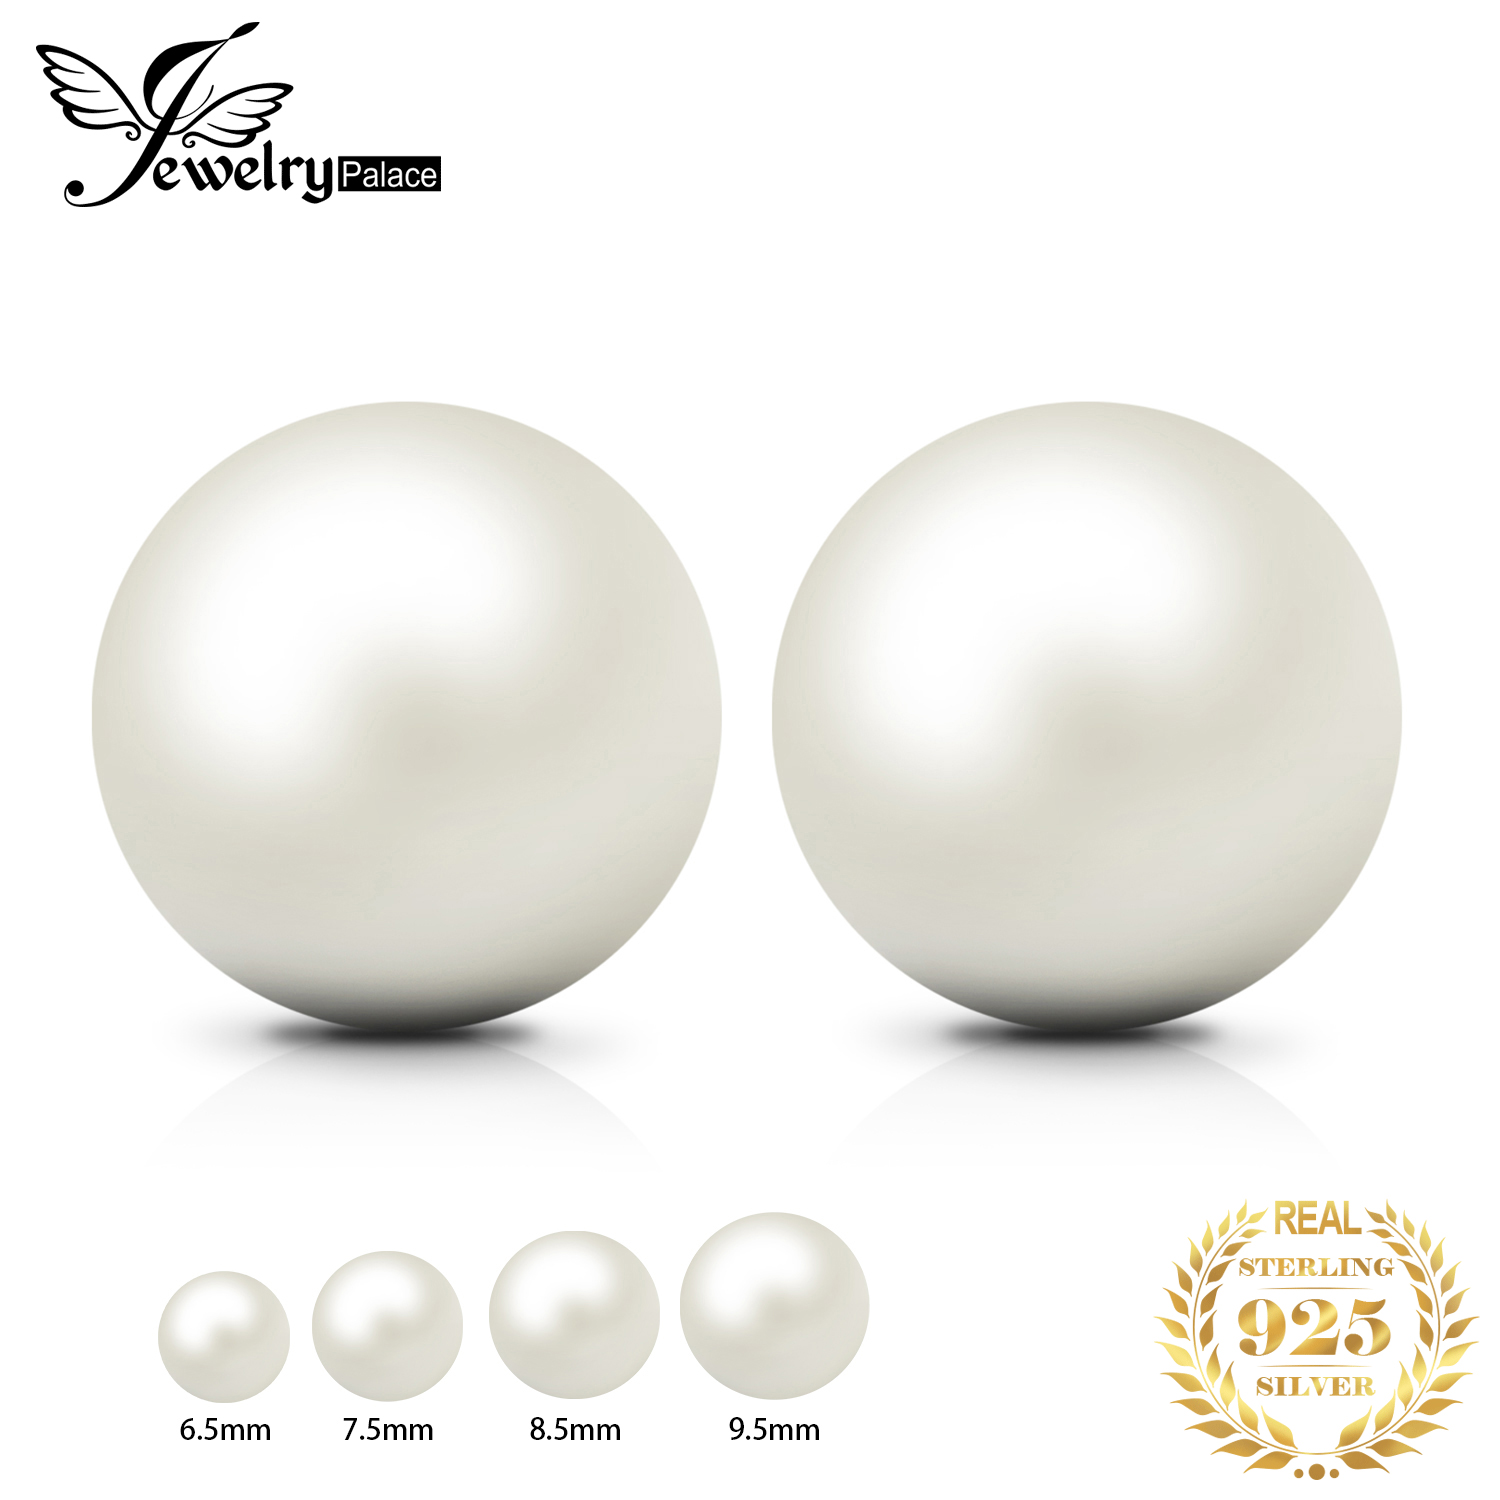 JewelryPalace Freshwater Cultured Pearl Ball Stud Earrings 925 Sterling Silver Earrings for Women Korean Earings Fashion Jewelry(China)